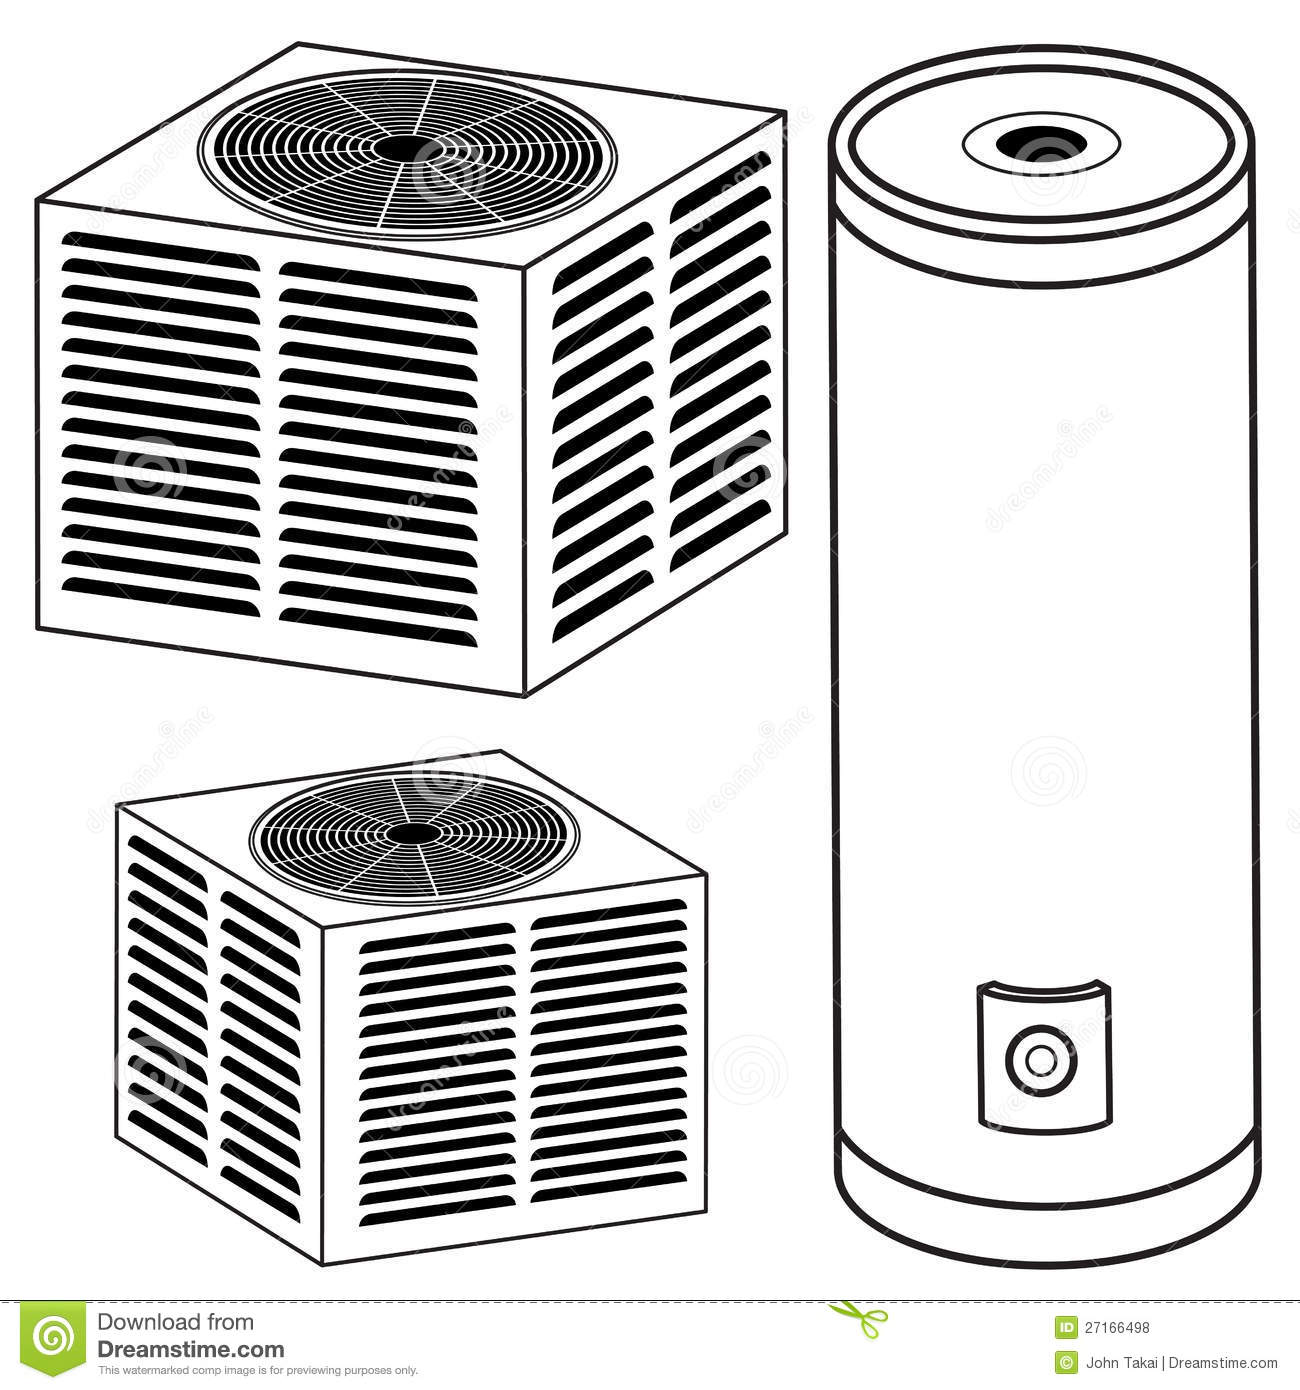 Central Air Conditioner Clipart - Viewing Gallery